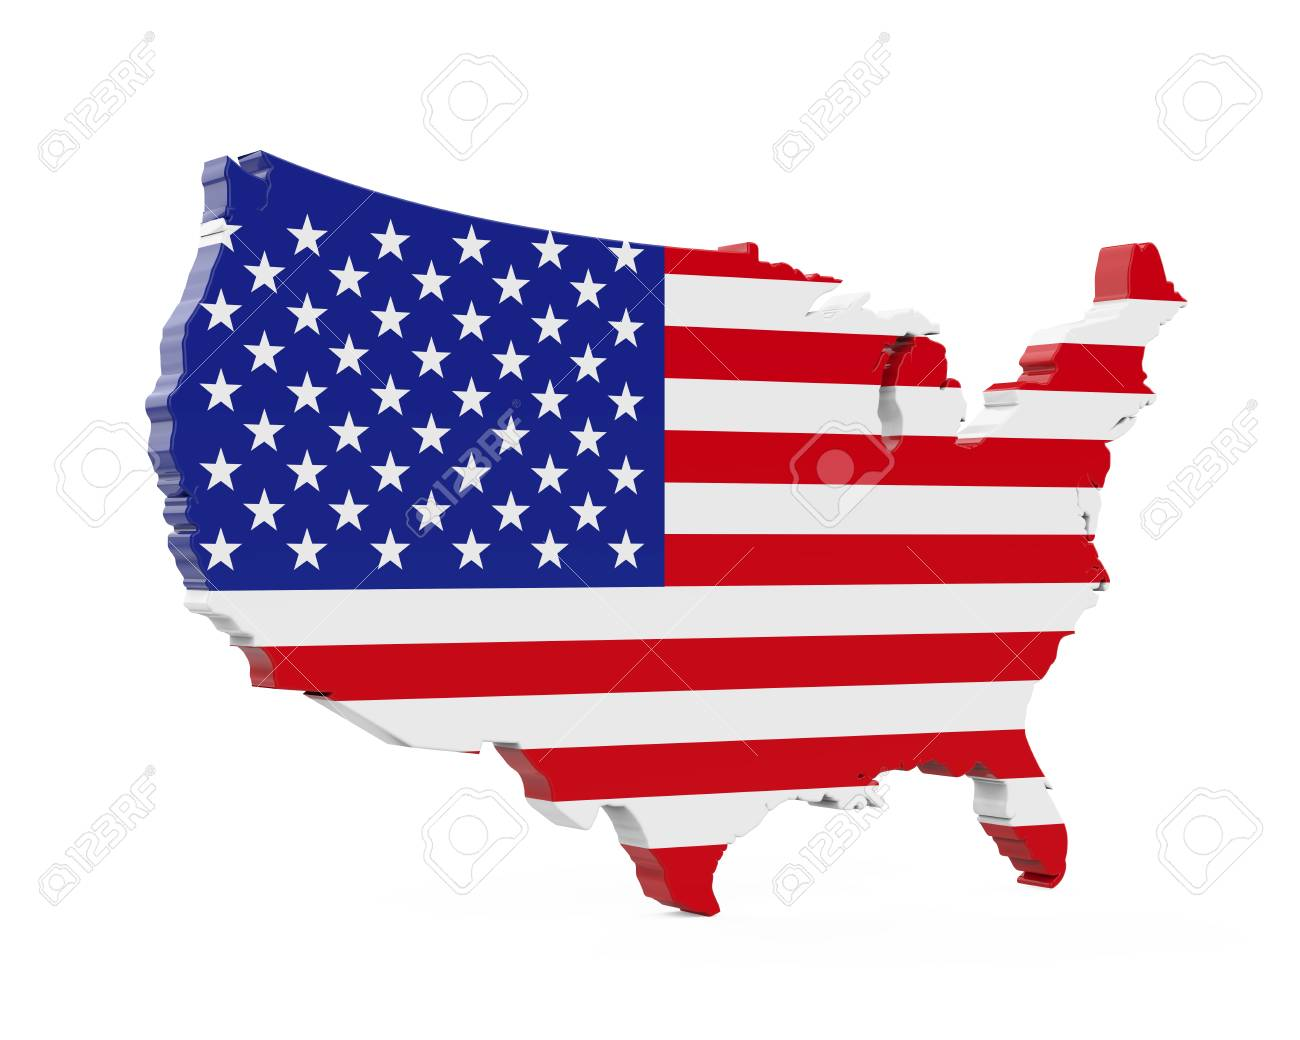 United States Of America Map Flag Stock Photo, Picture And Royalty ...